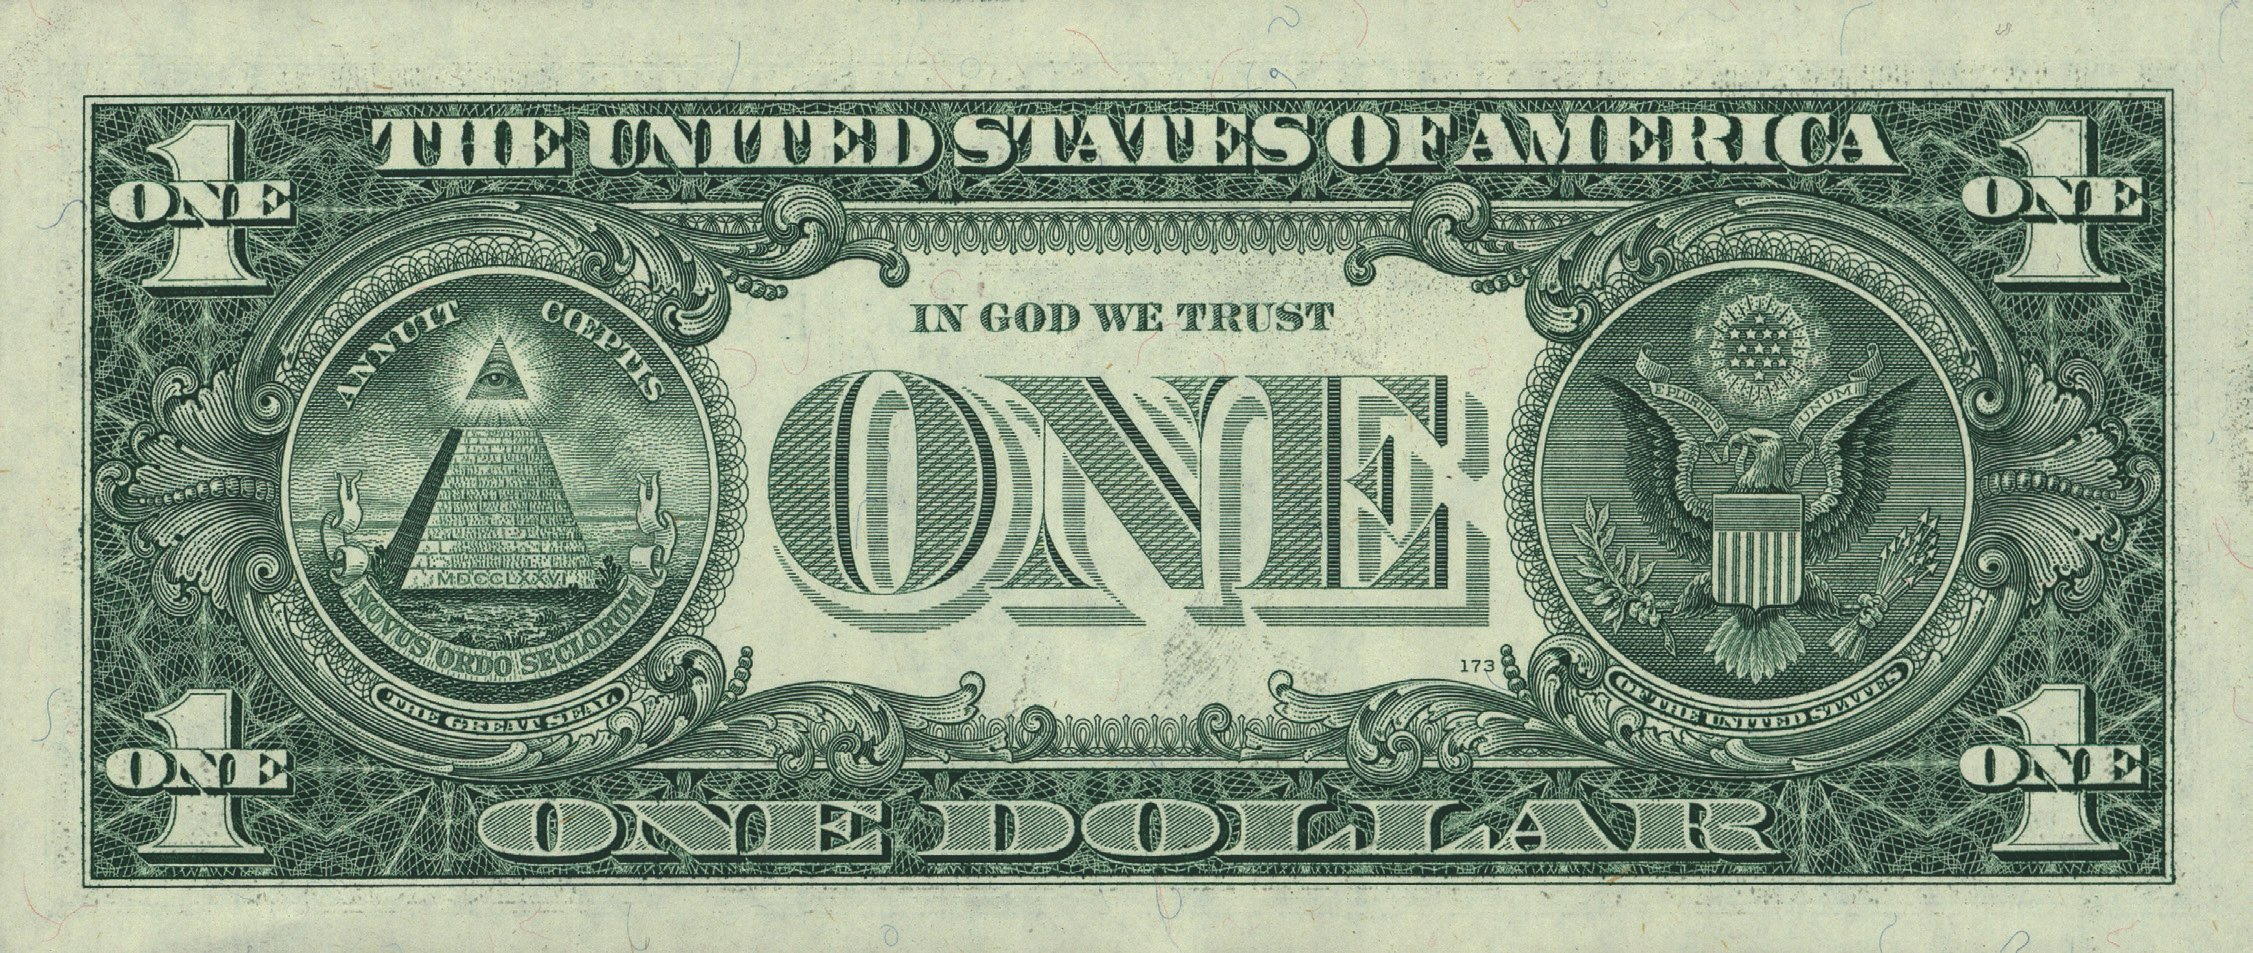 Secret illuminati symbols hidden intelligently on the dollar bills the 1 bill and fdr biocorpaavc Images